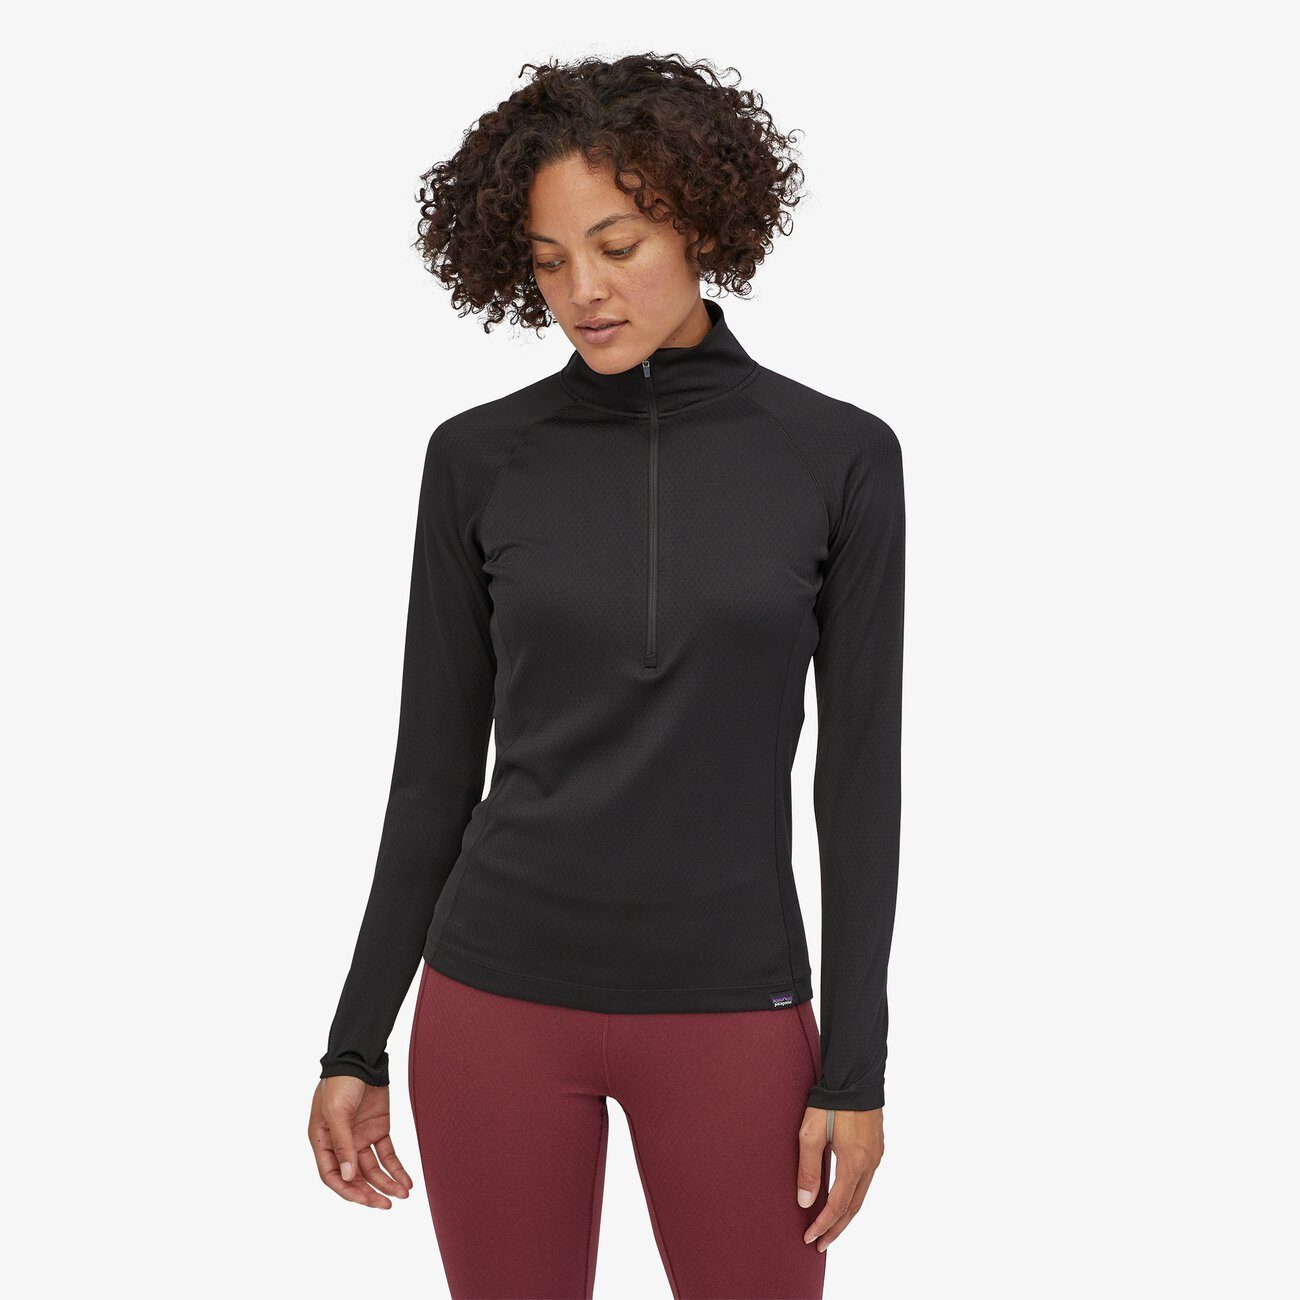 Patagonia - Capilene Midweight Zip-Neck - Recycled Polyester - Weekendbee - sustainable sportswear